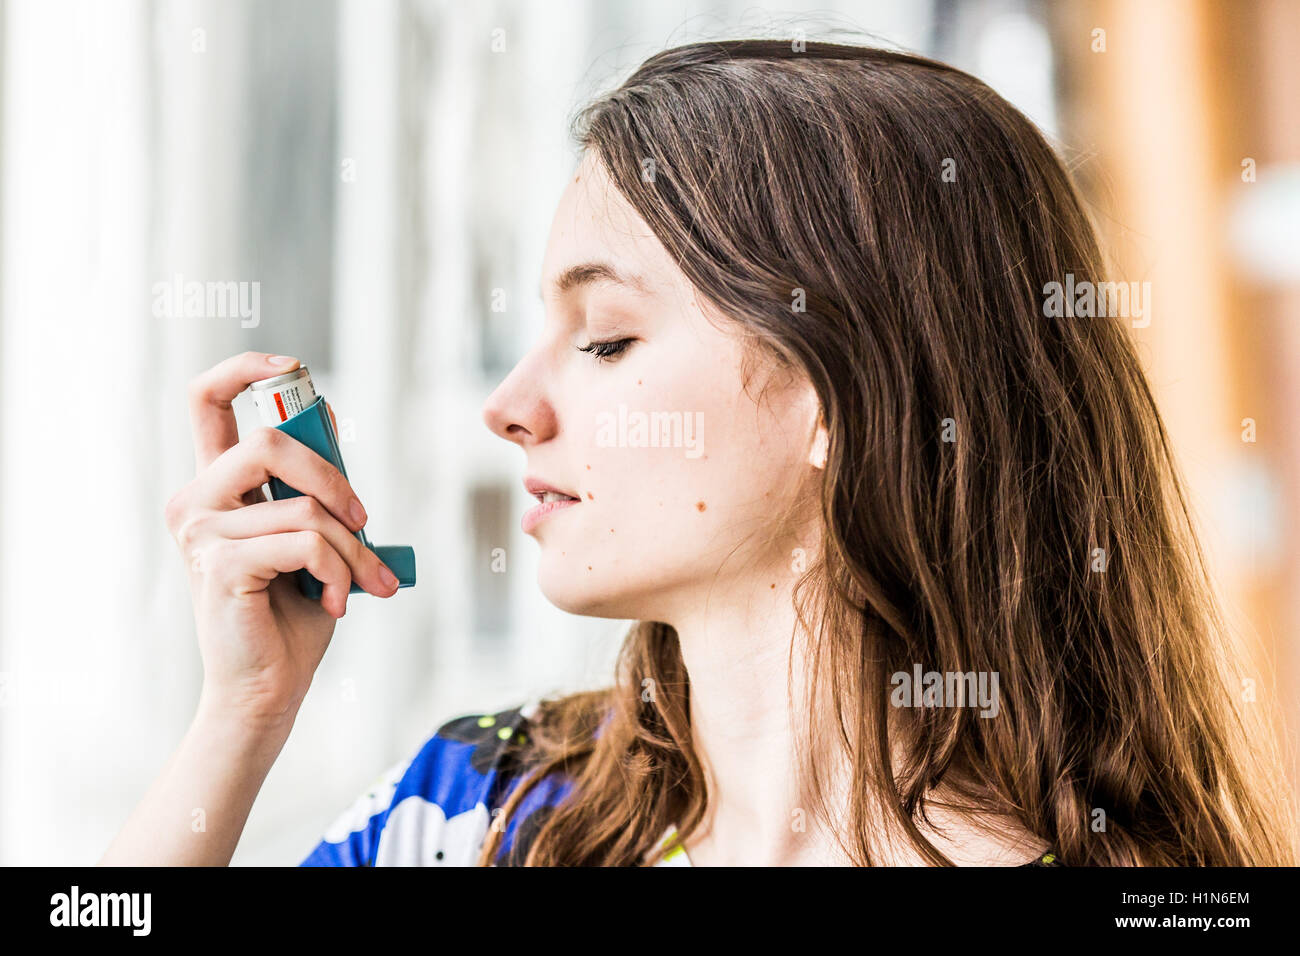 Tennage girl using an aerosol inhaler that contains bronchodilator for the treatment of asthma. - Stock Image